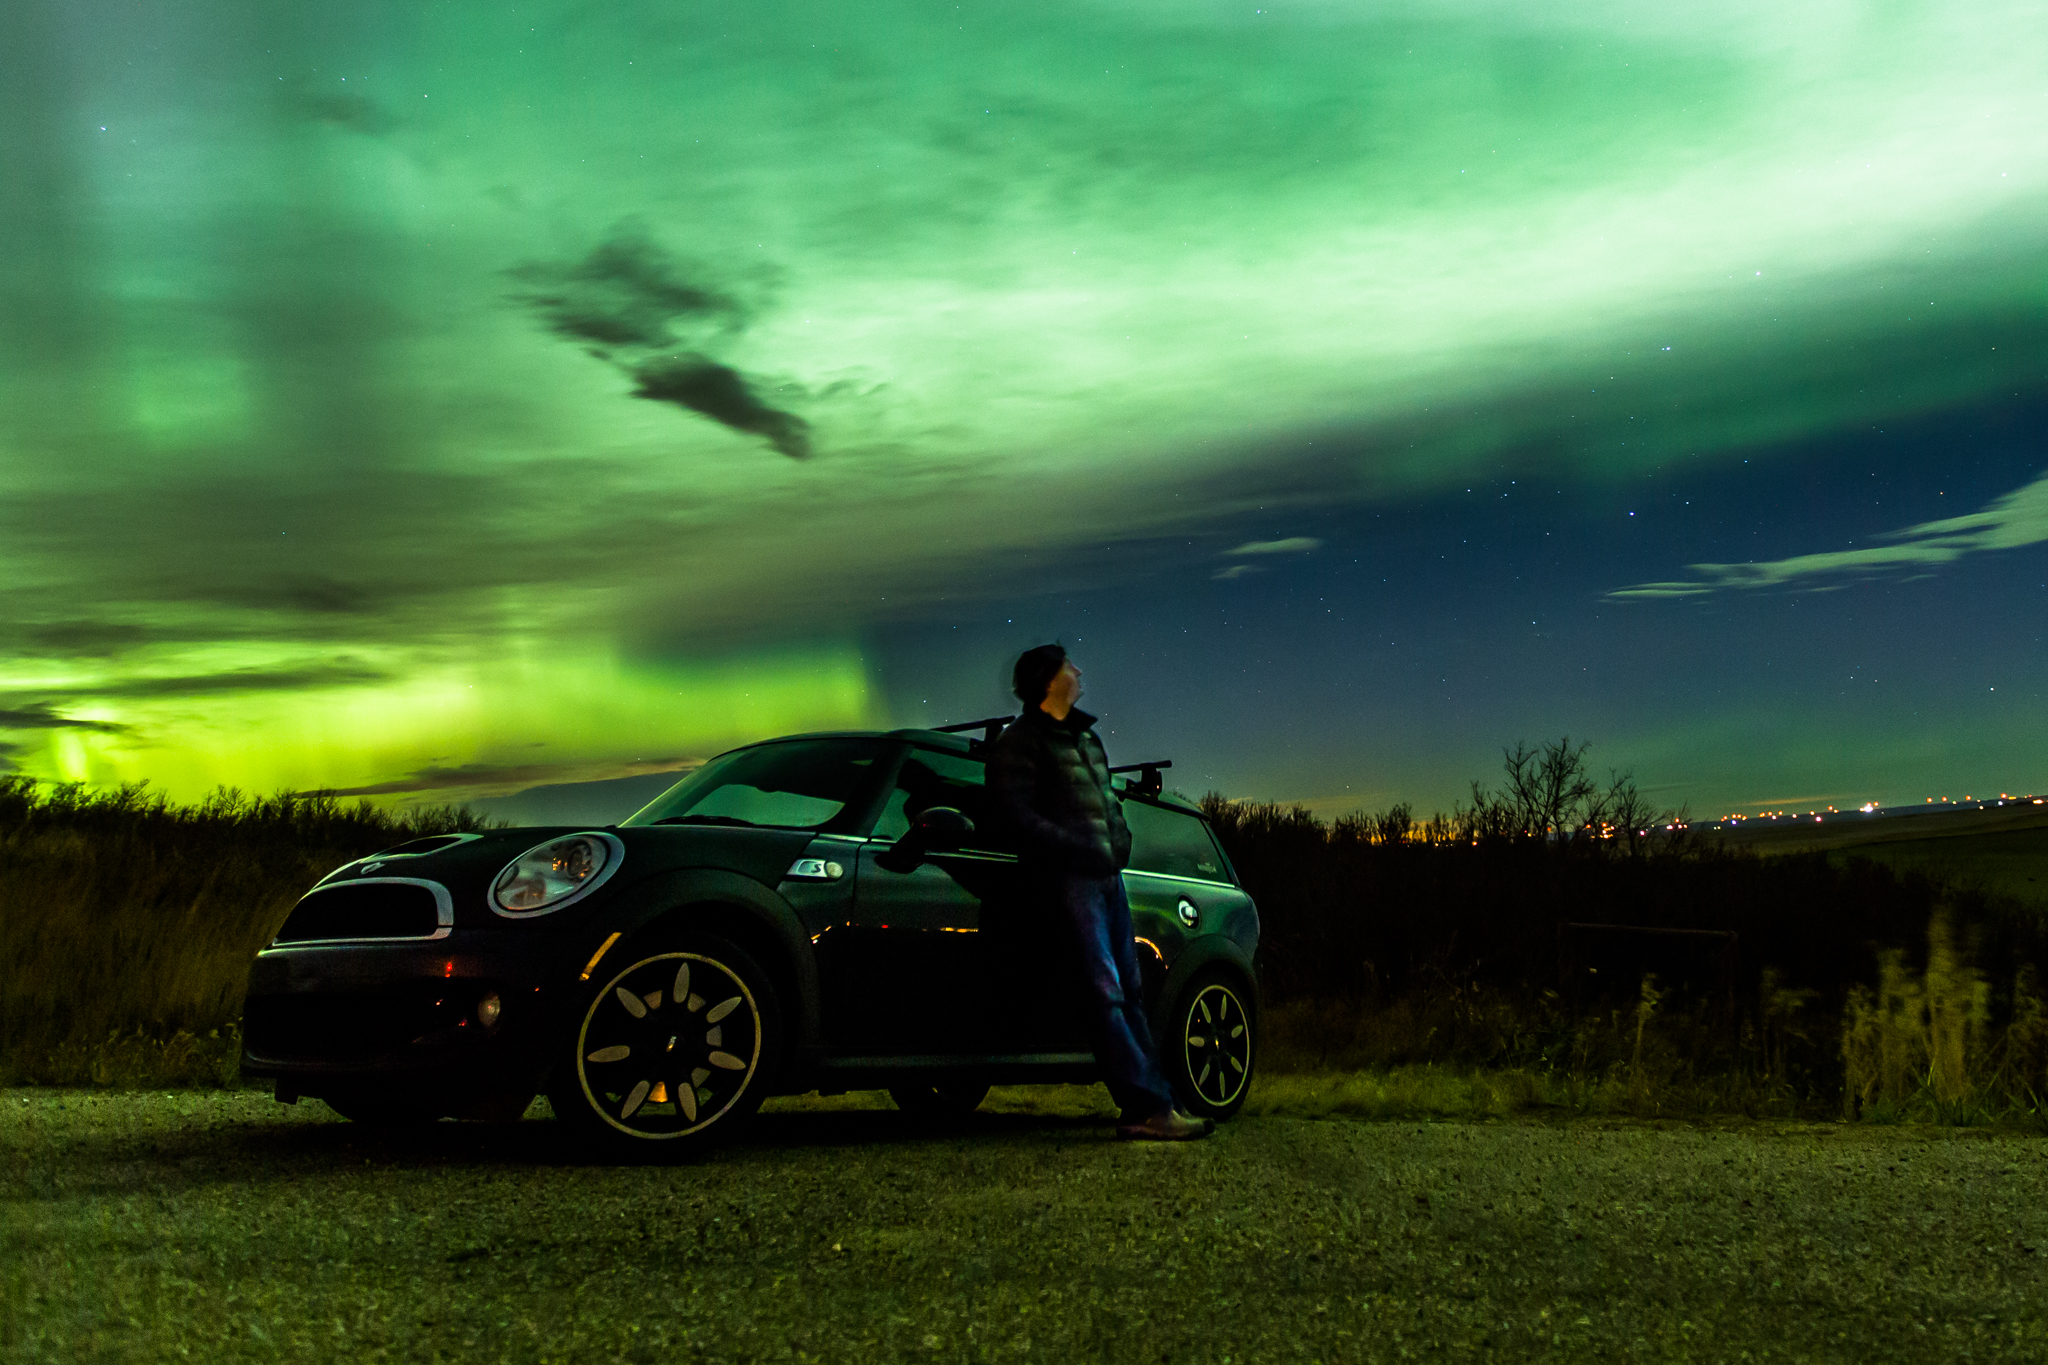 Man leaning against a car with a bright, glowing green aurora filling the sky behind him.